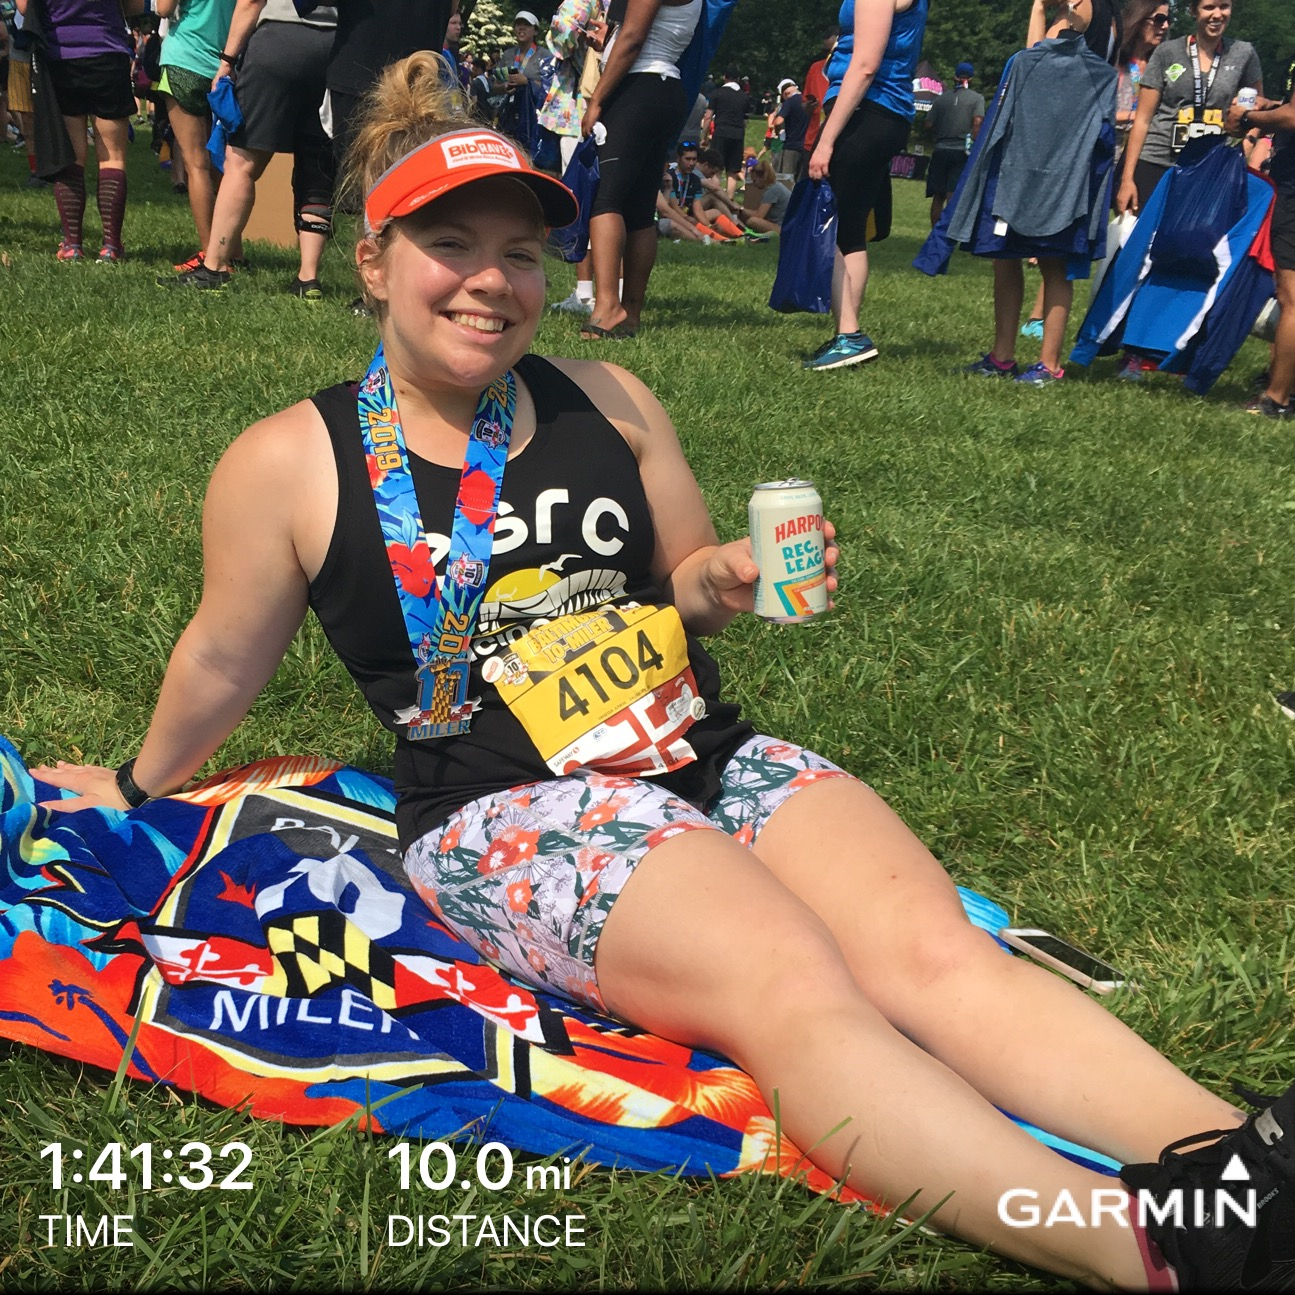 Vanessa relaxing on beach towel with beer after Baltimore 10 Miler.